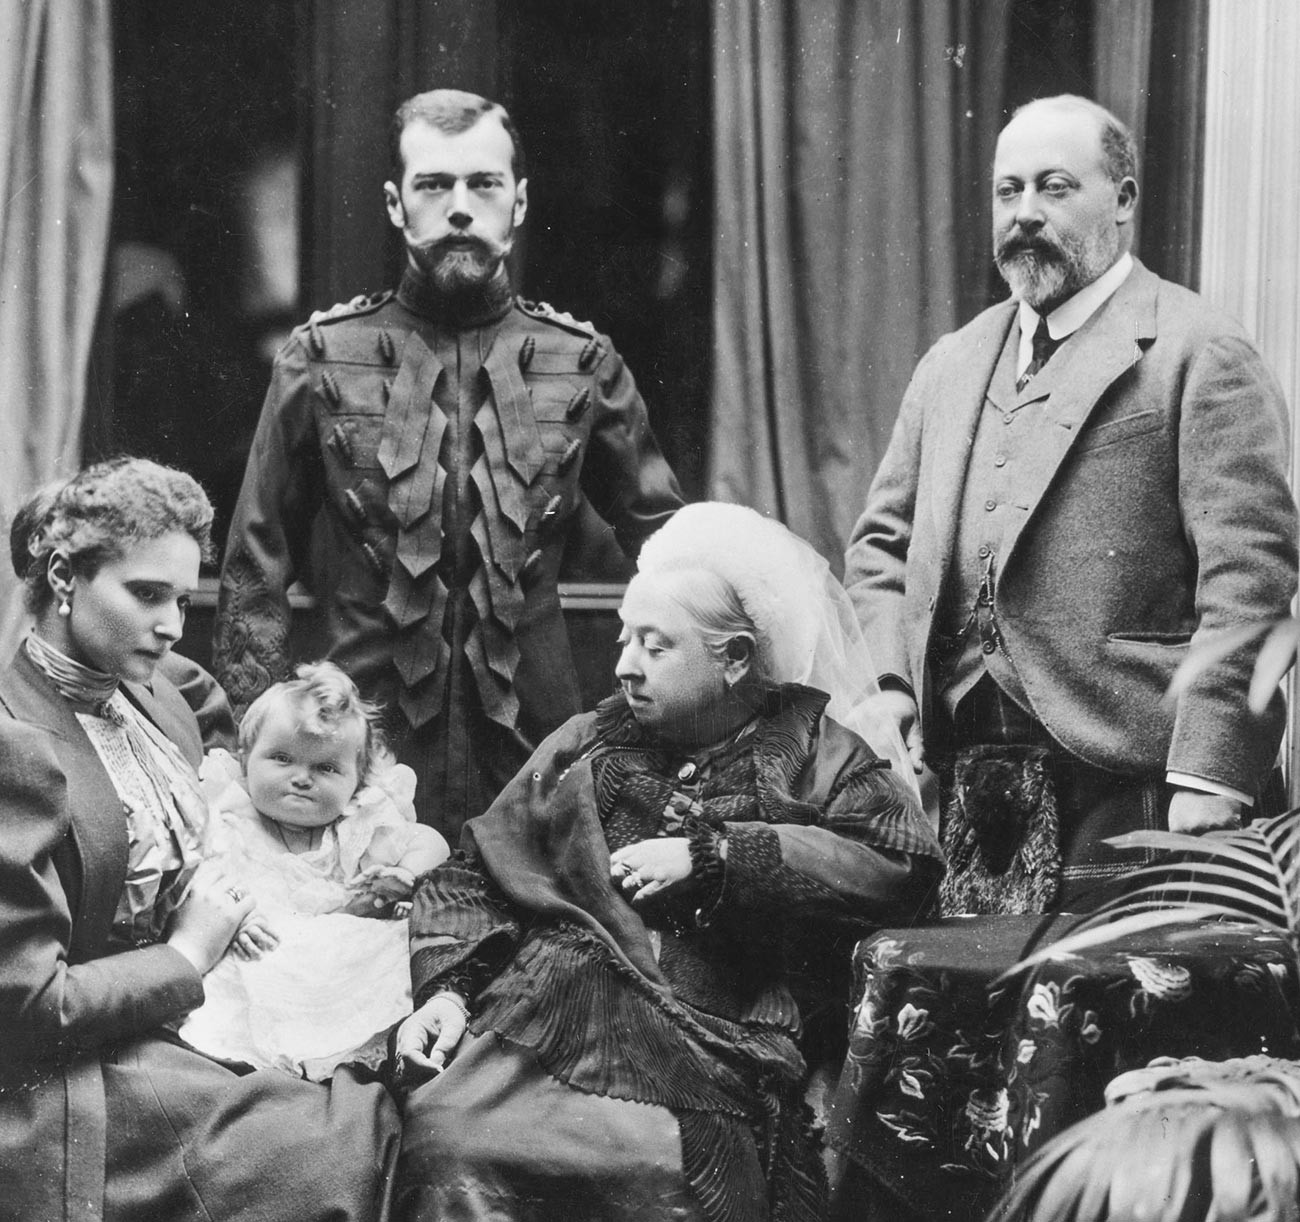 Queen Victoria and her son, Prince Edward VII (r), with Russian Emperor Nicholas II, his wife Alexandra, and their newborn daughter, Olga.